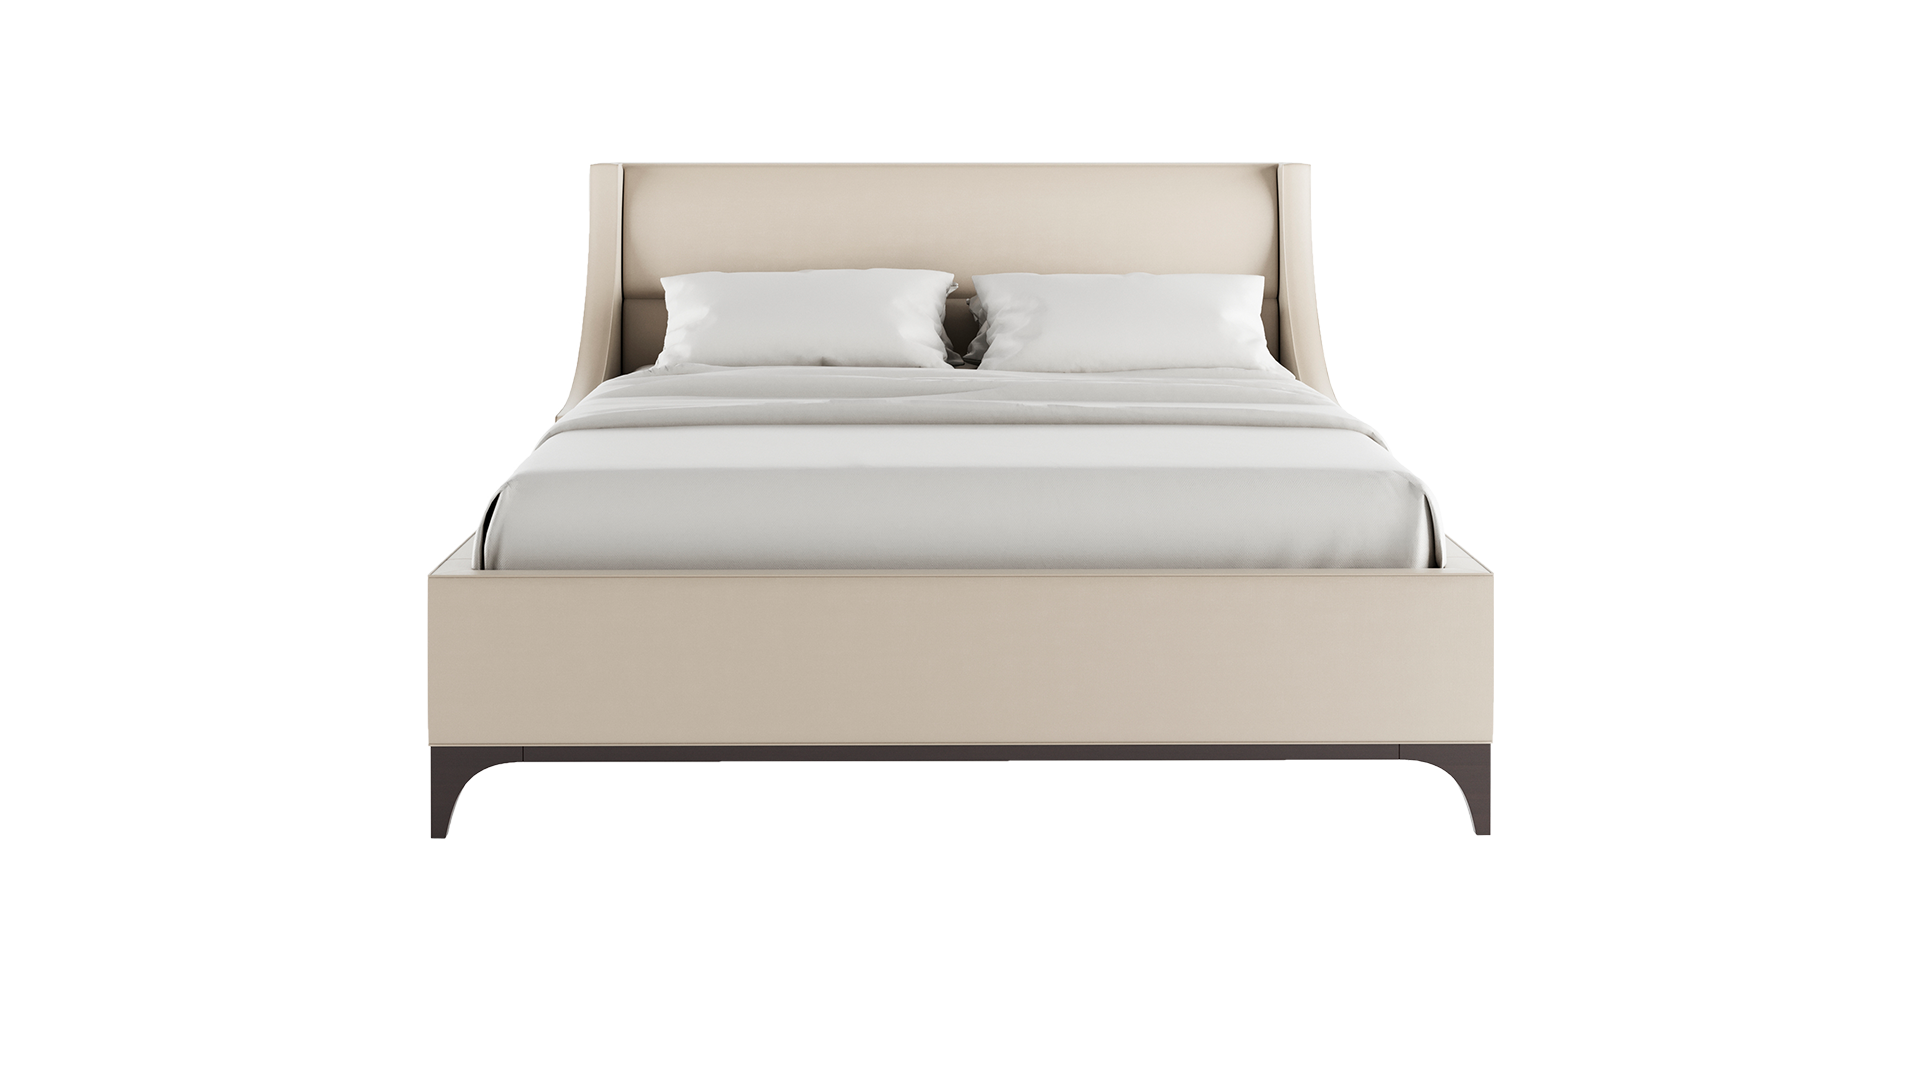 H43 in, W71 in, D89 in - Bed HD PNG